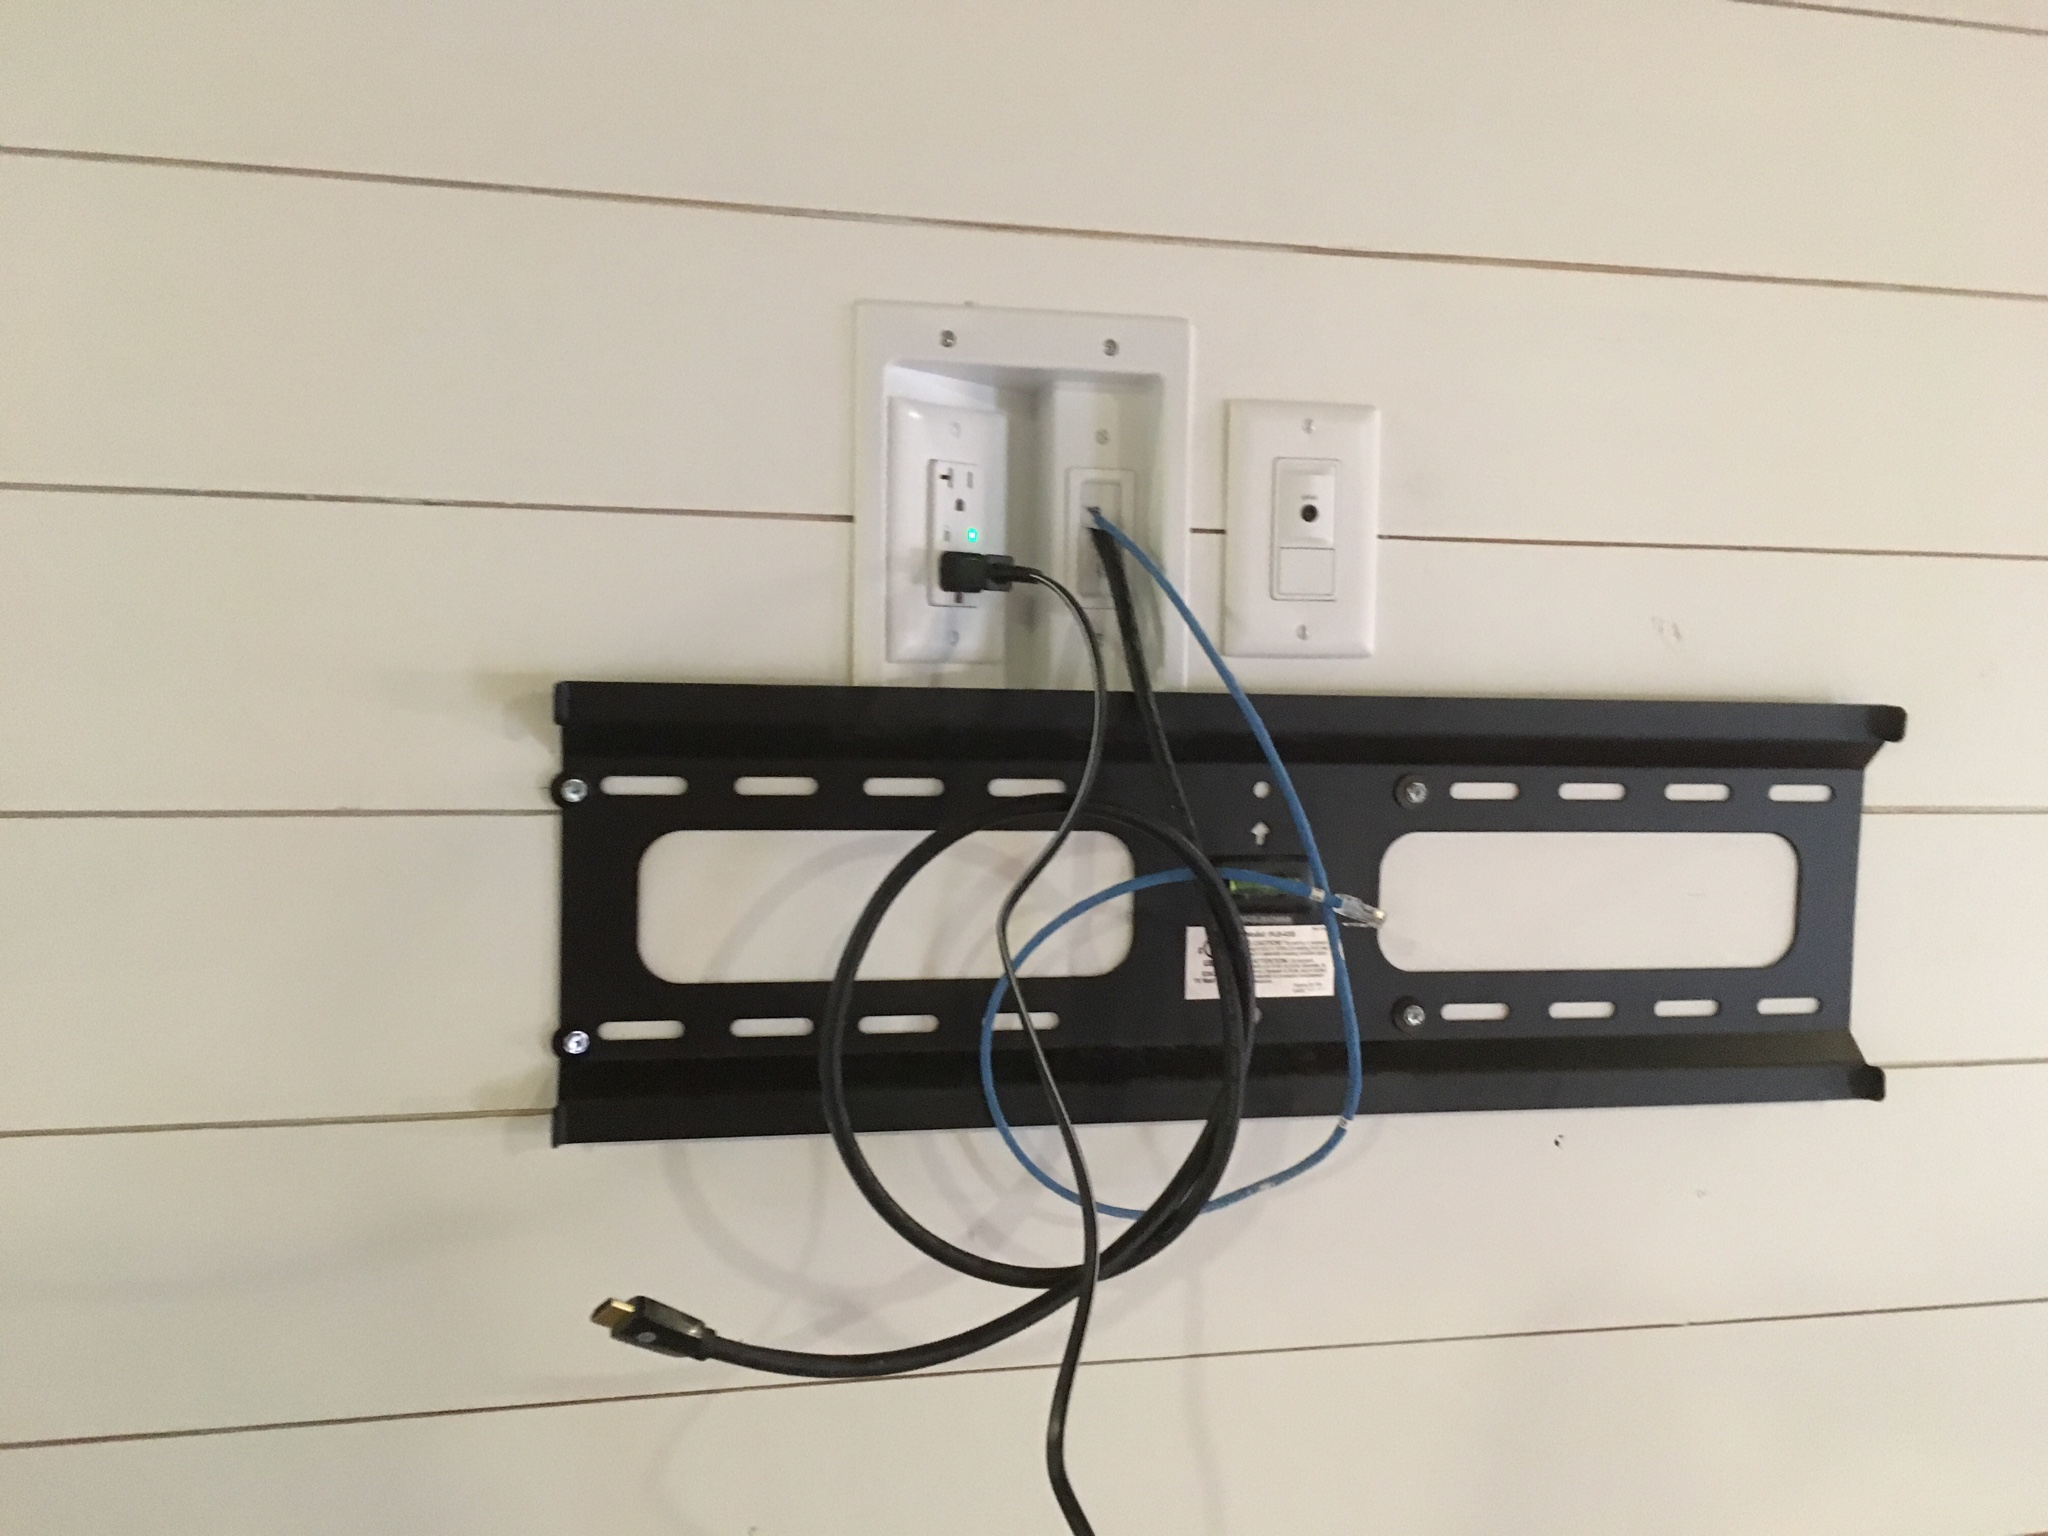 Best products for new structured wiring install in existing home ...